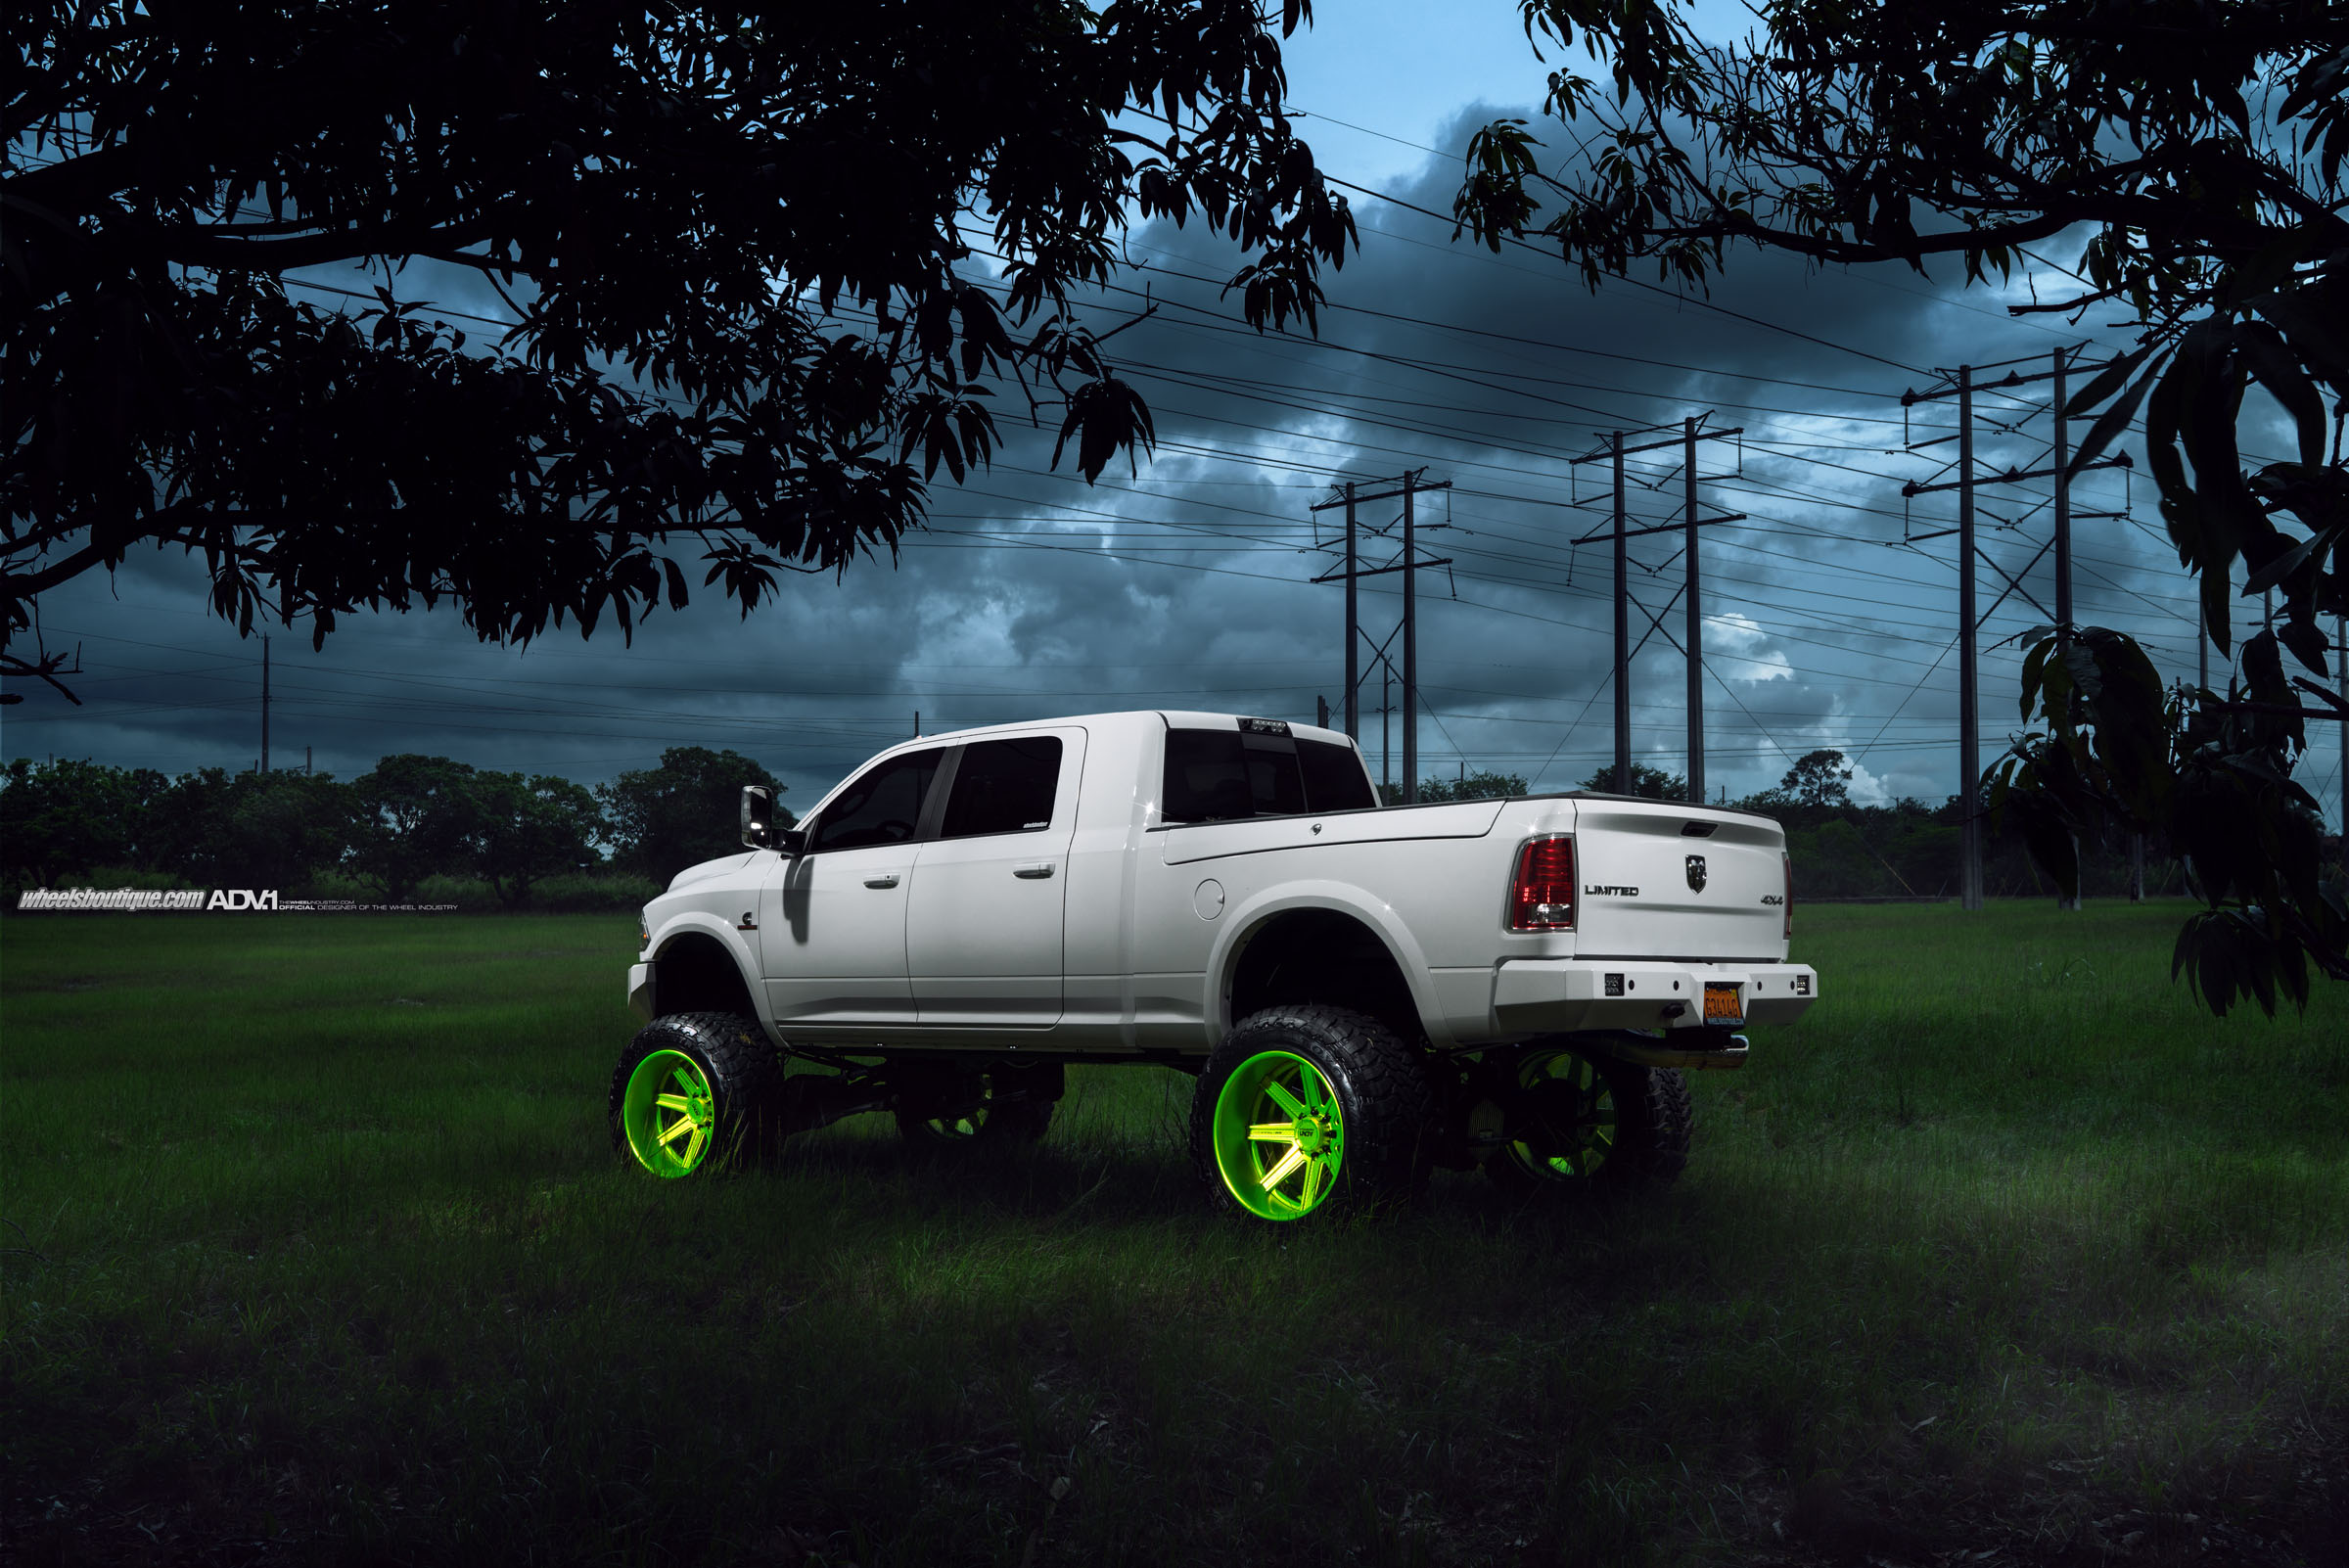 ADV1-dodge-Ram-2500-hd-rims-Lifted-cummins-4x4-forged-H